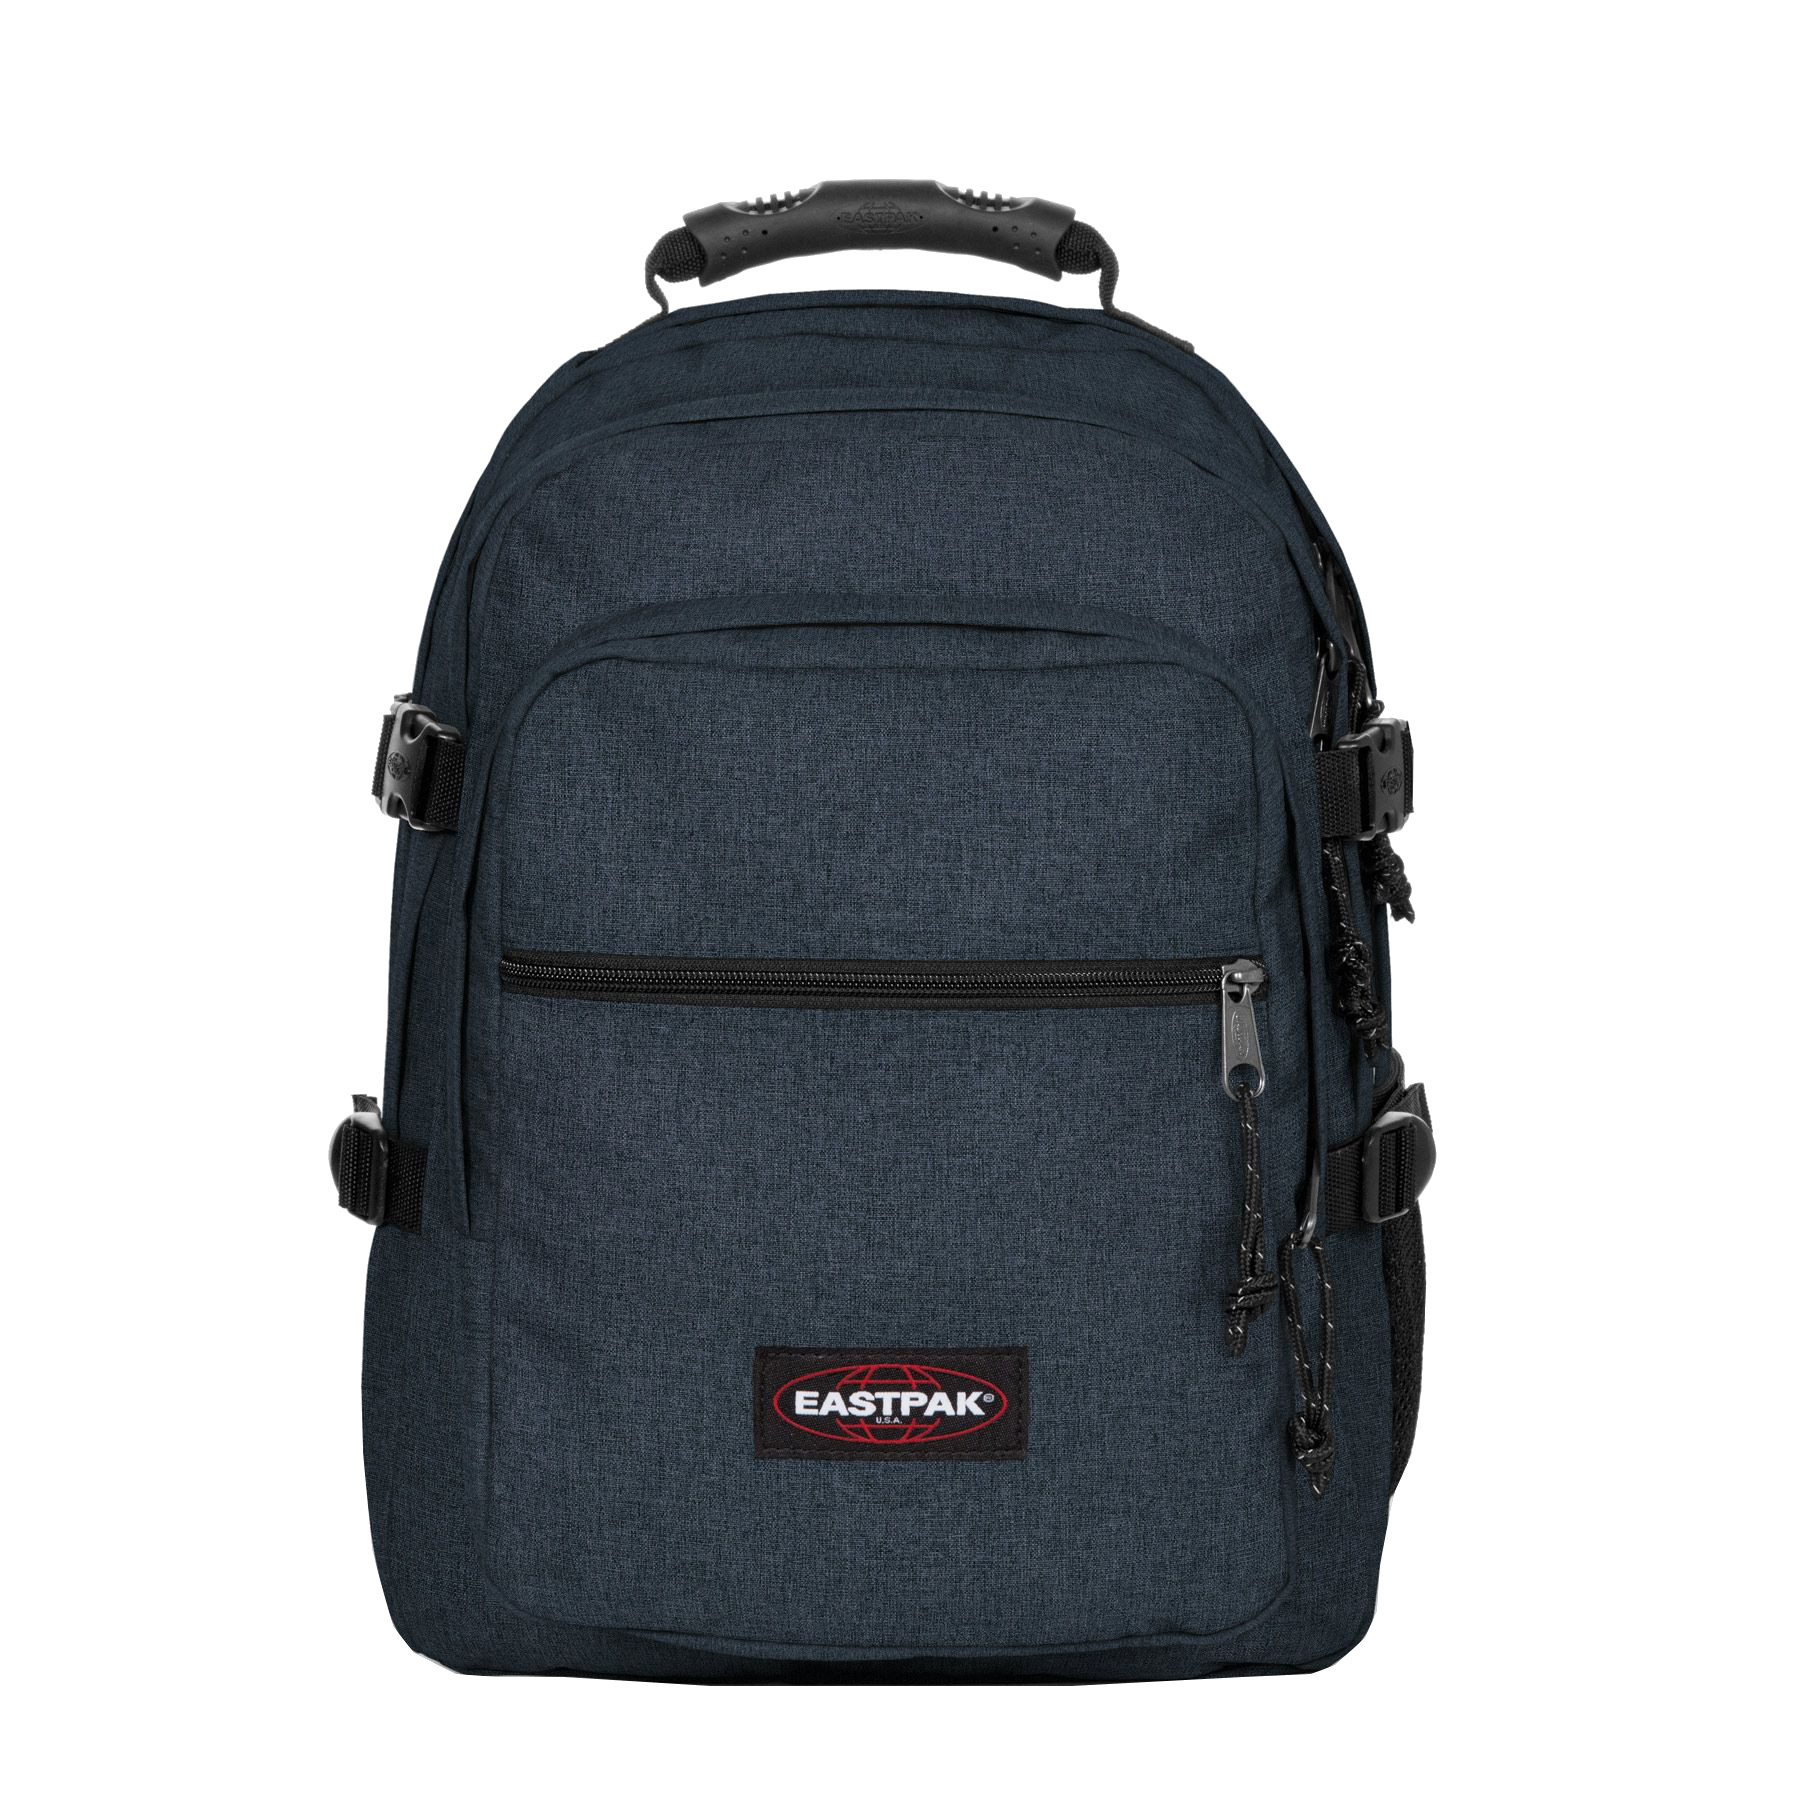 Eastpak 'Walf' Rucksack mit Laptopfach 34l triple denim